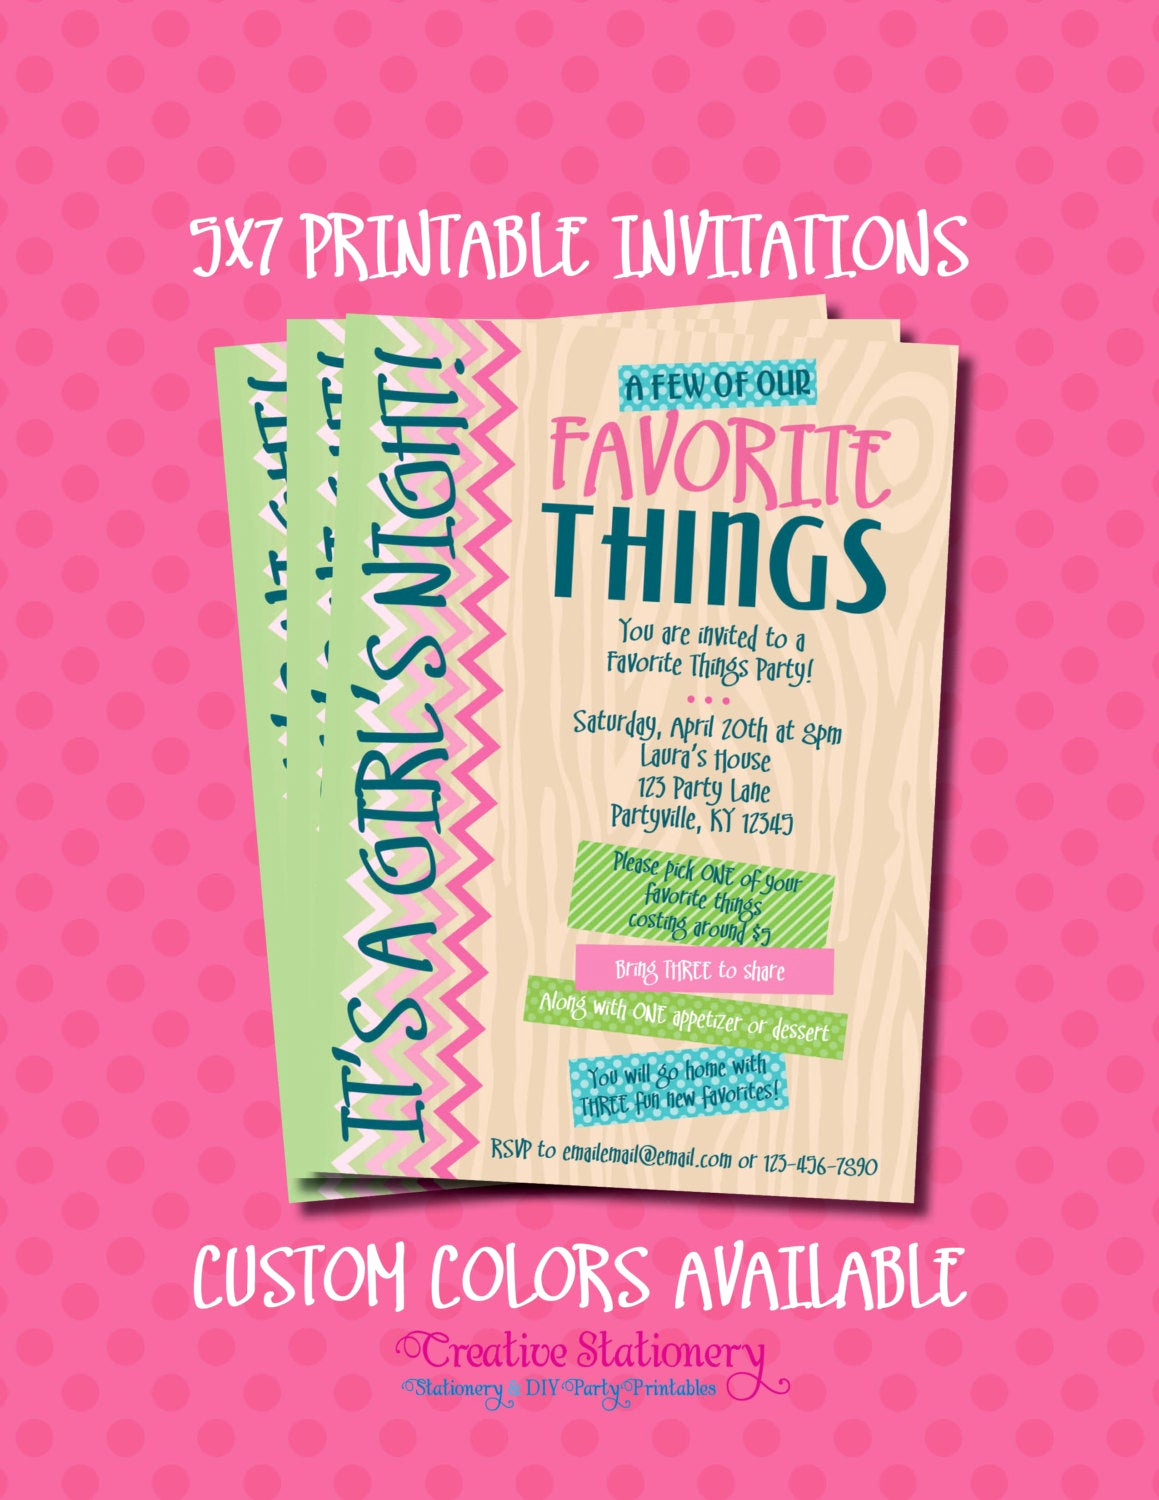 Favorite Things Party Invitation Fresh Favorite Things Party Invitations Printable by